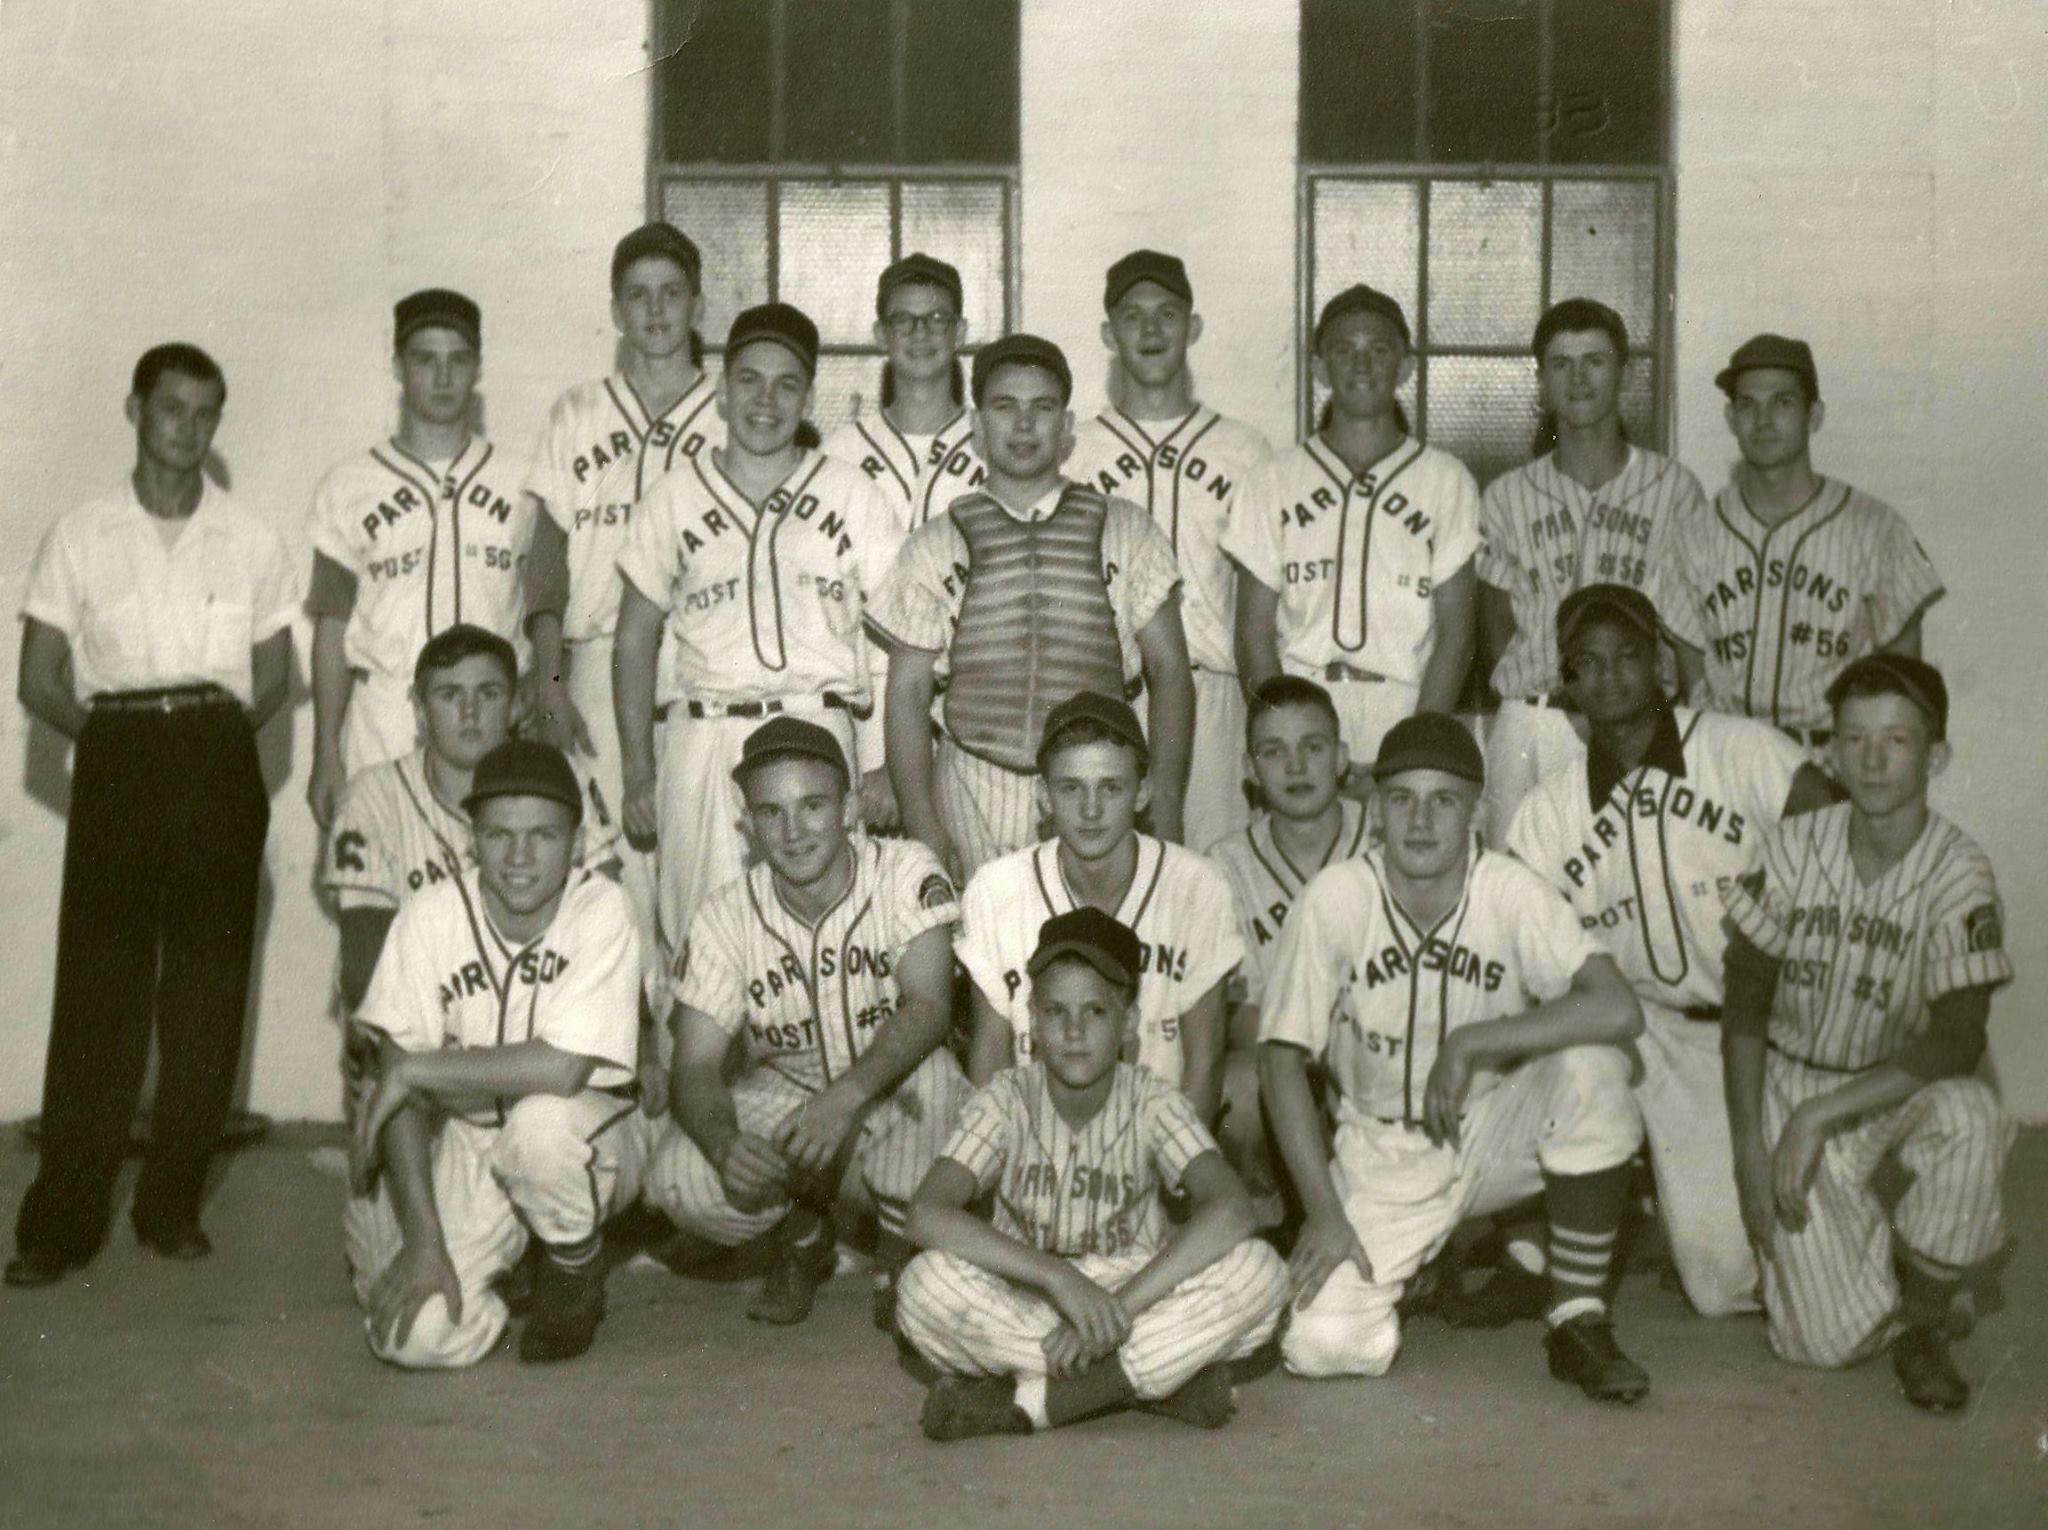 #44 PARSONS 1956 AMERICAN LEGION CHAMPIONSHIP BASEBALL TEAM - THE ST. LOUIS CARDINALS IN PARSONS KANSAS IN 1918